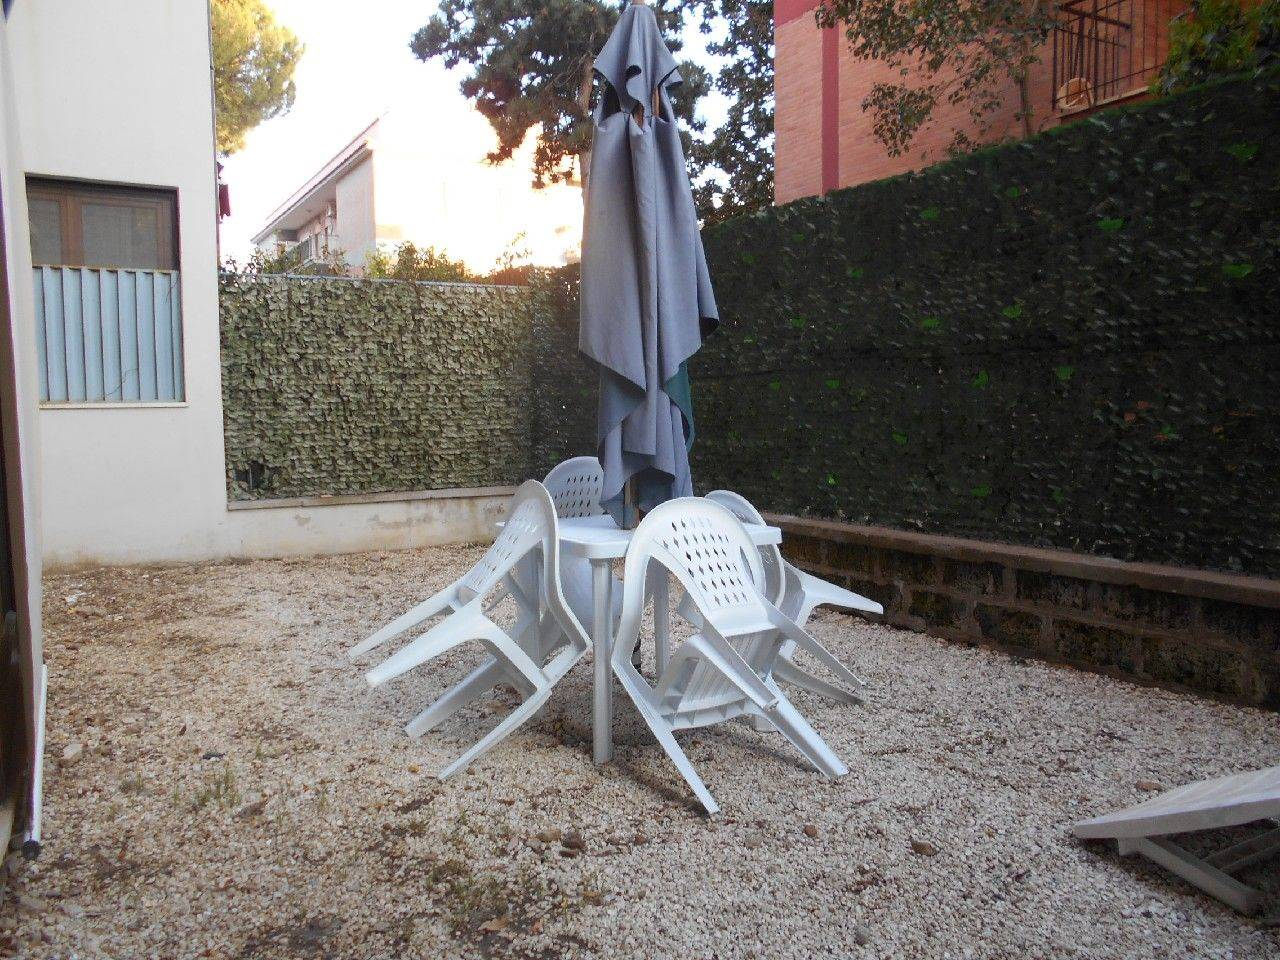 SANTA MARINELLA, Apartment for the vacation for rent of 50 Sq. mt., Habitable, Heating Individual heating system, Energetic class: G, Epi: 175 kwh/m2